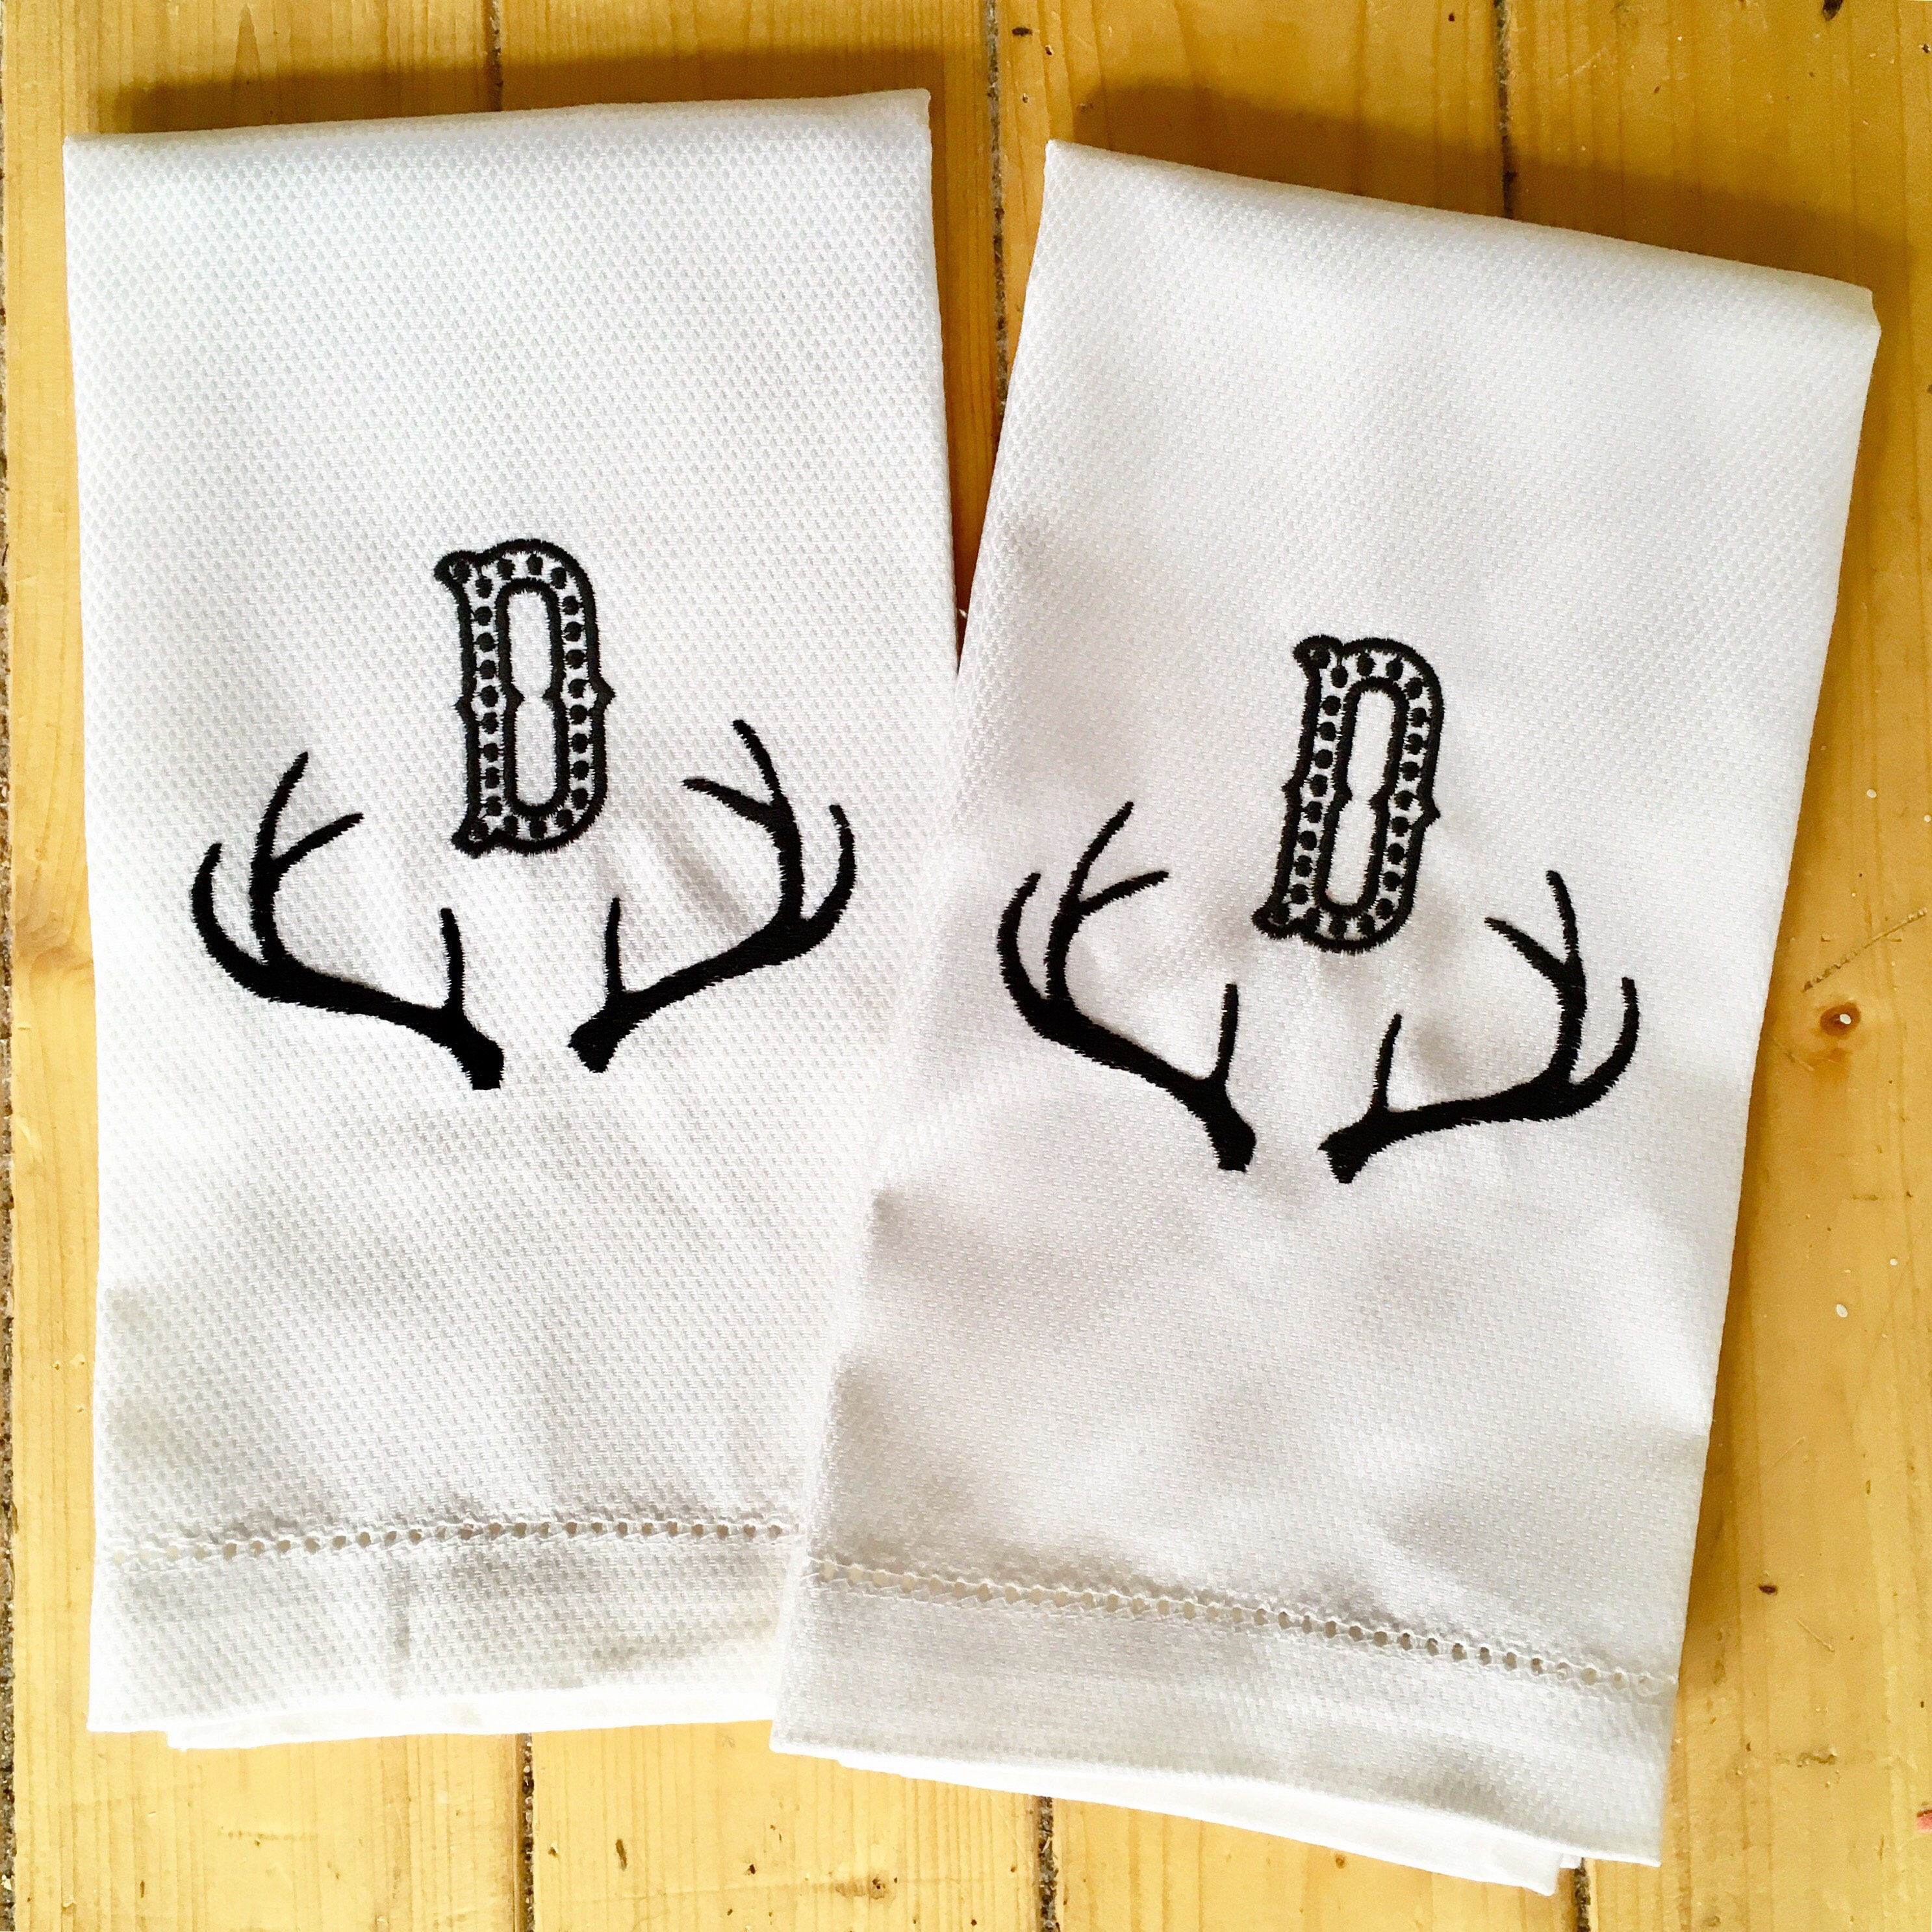 Embroidered Towels For Wedding Gift: Monogram Hand Towel With Embroidered Antlers / Wedding Gift